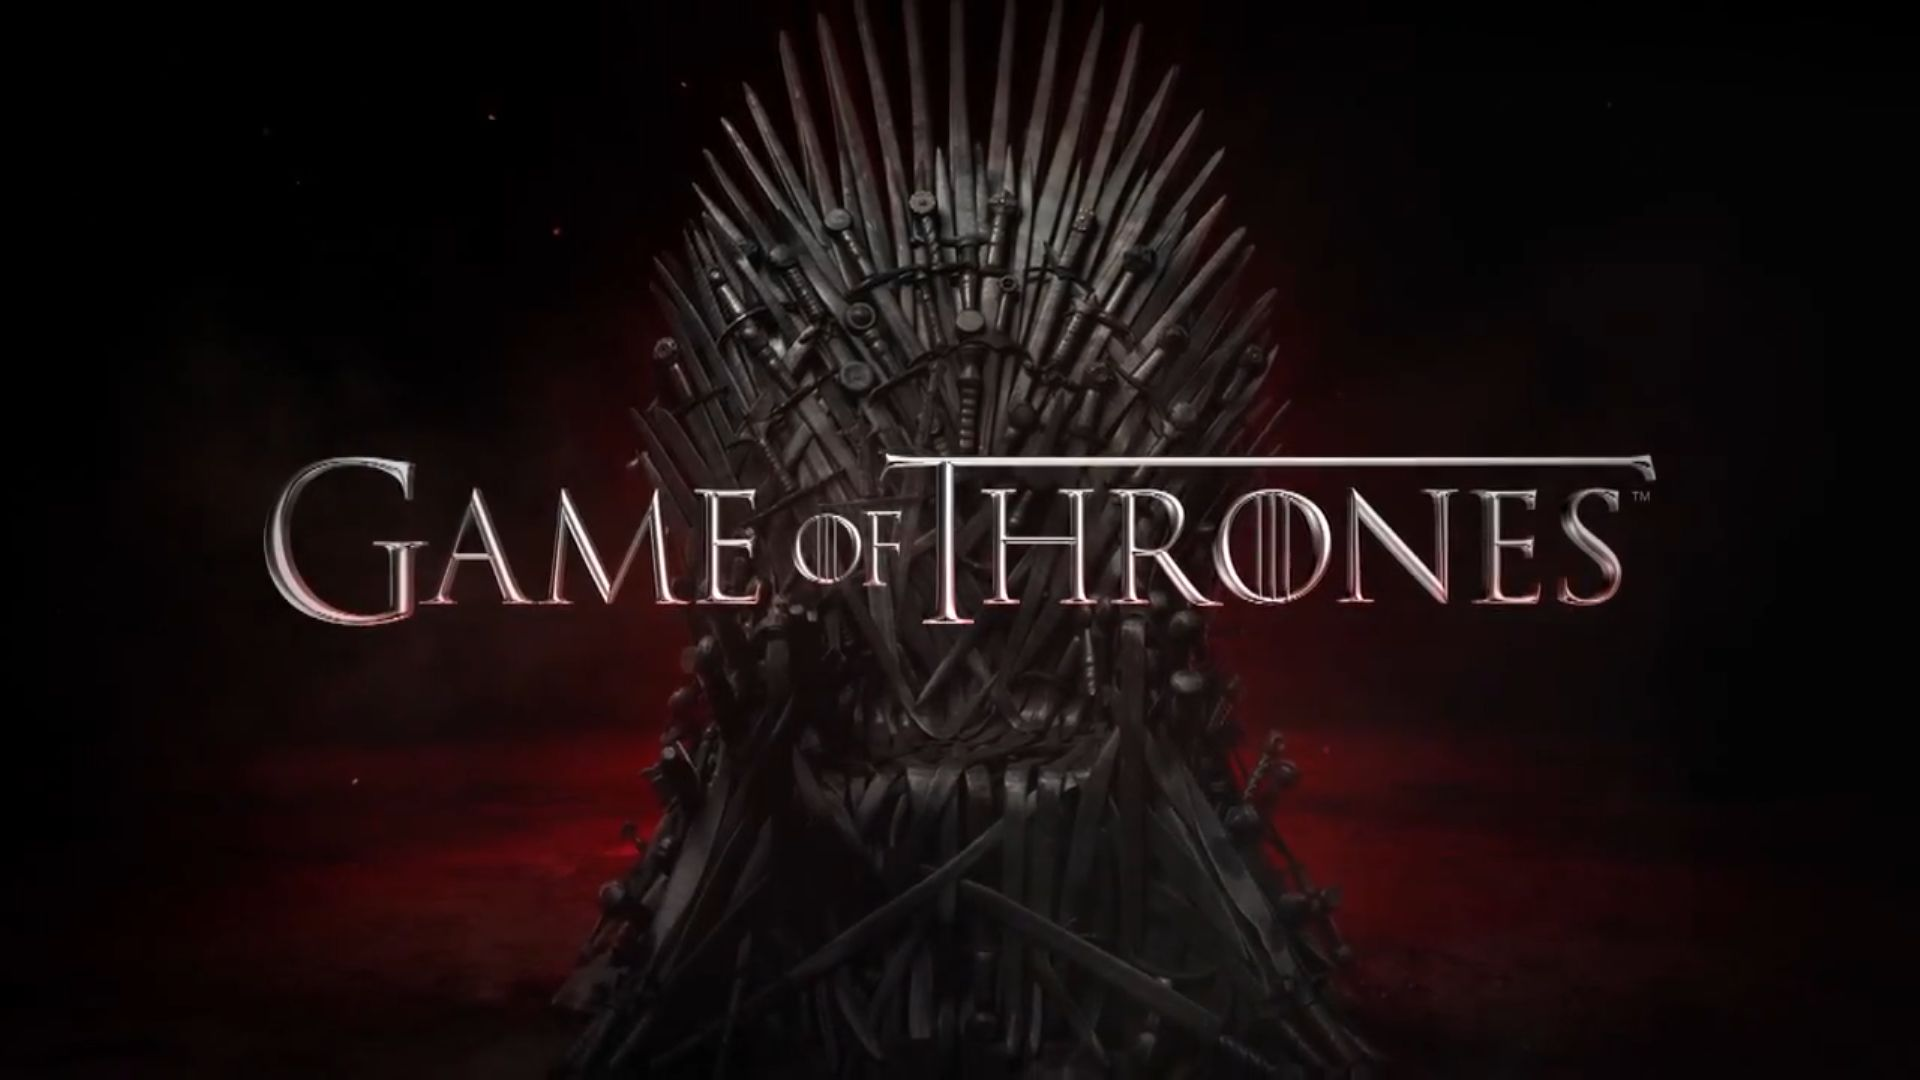 Hd Wallpapers Backgrounds For Game Of Thrones Free For: Game Of Thrones Computer Wallpaper